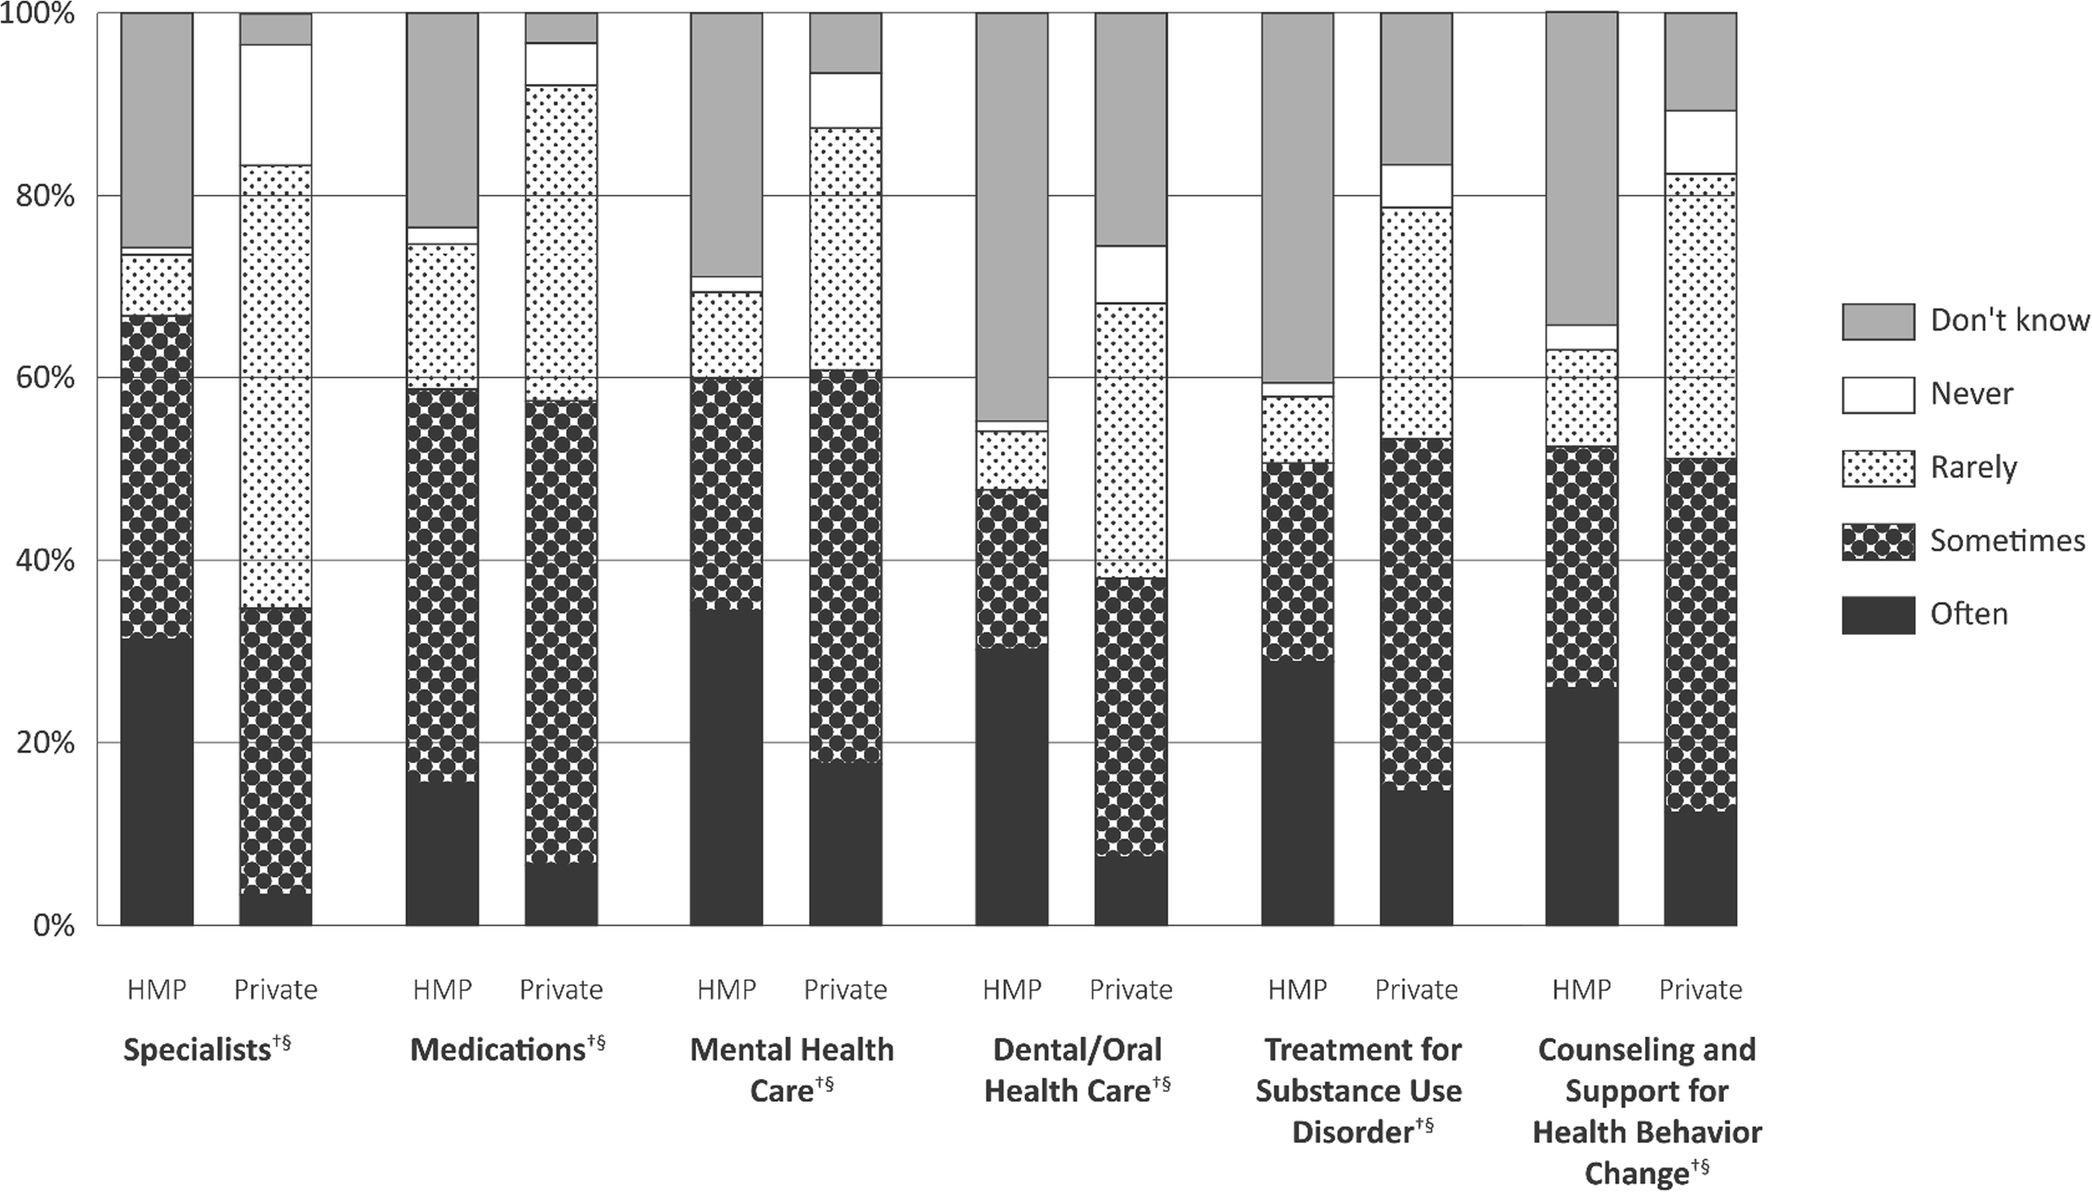 Primary Care Clinicians' Views About the Impact of Medicaid